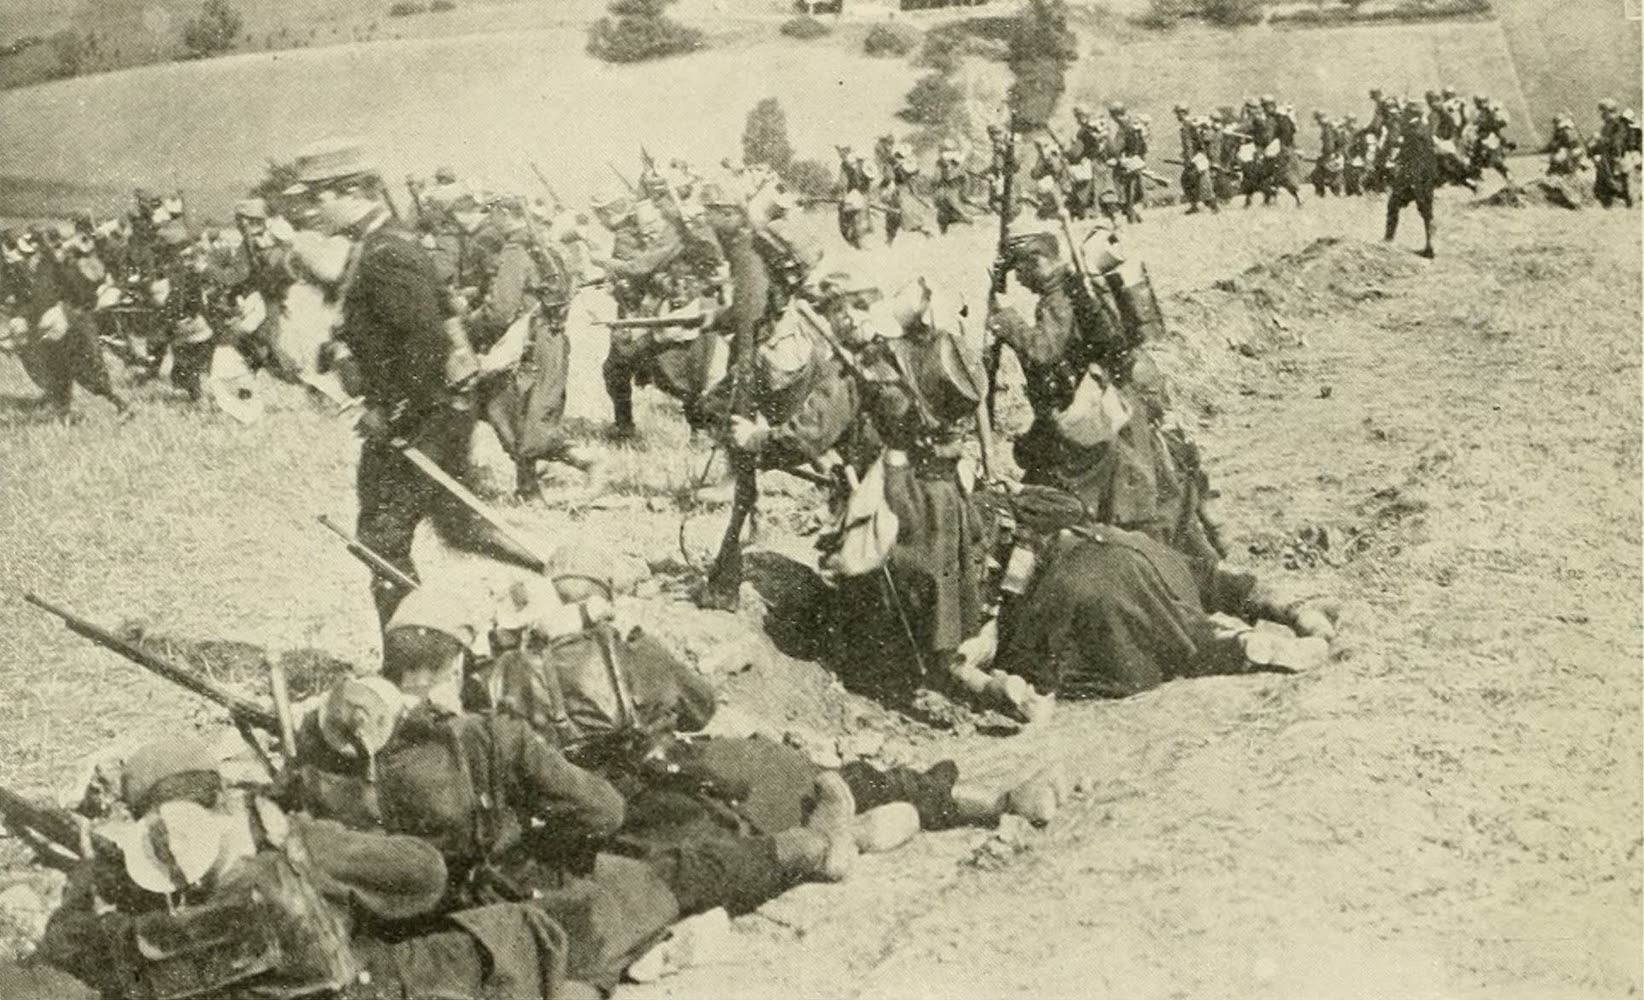 Laird & Lee's World's War Glimpses - French Skirmishers Advancing for a Flank Attack (1914)